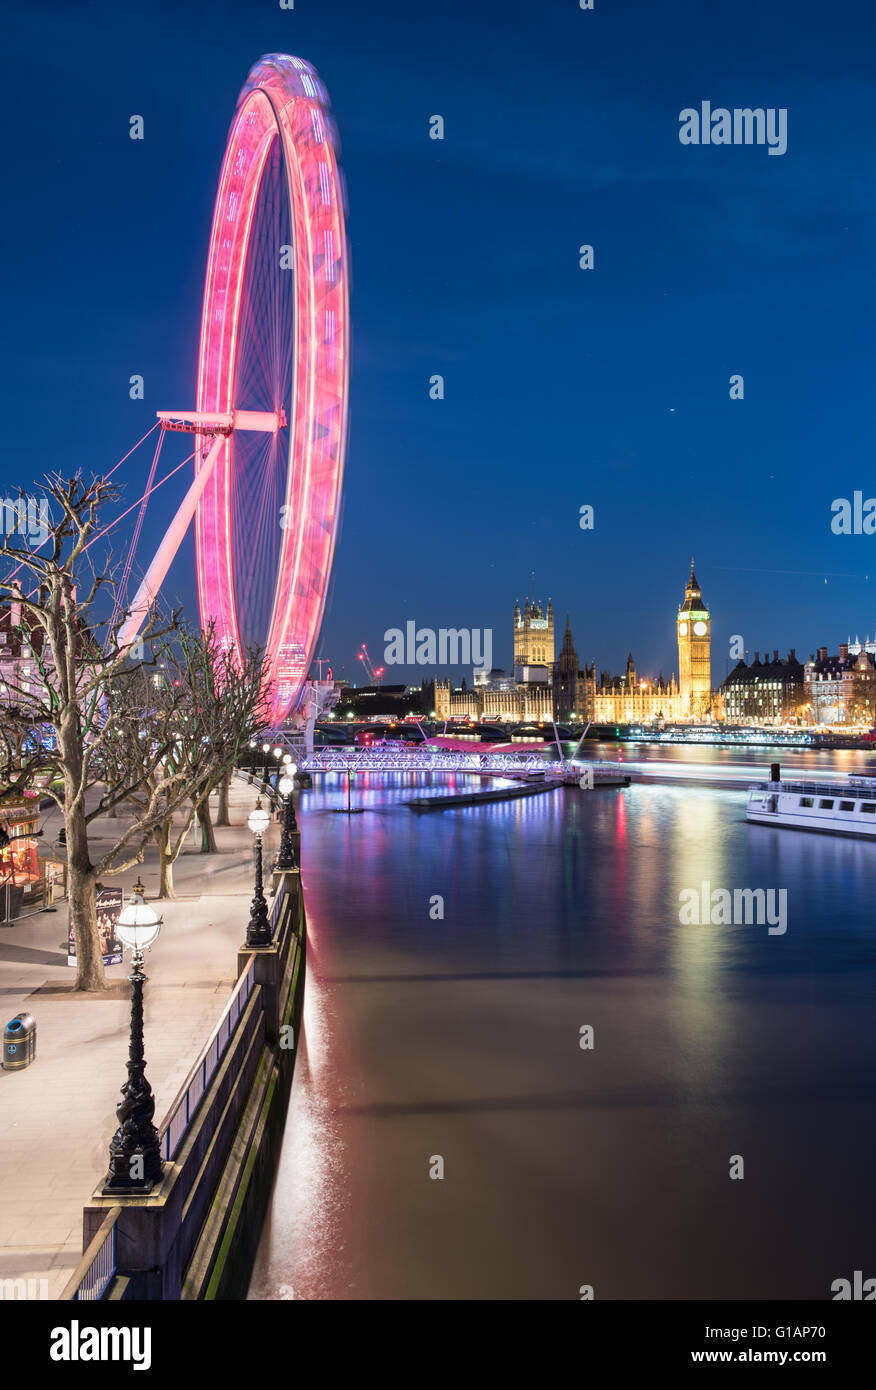 Looking south towards The London Eye and Houses of Parliament at night. - Stock Image